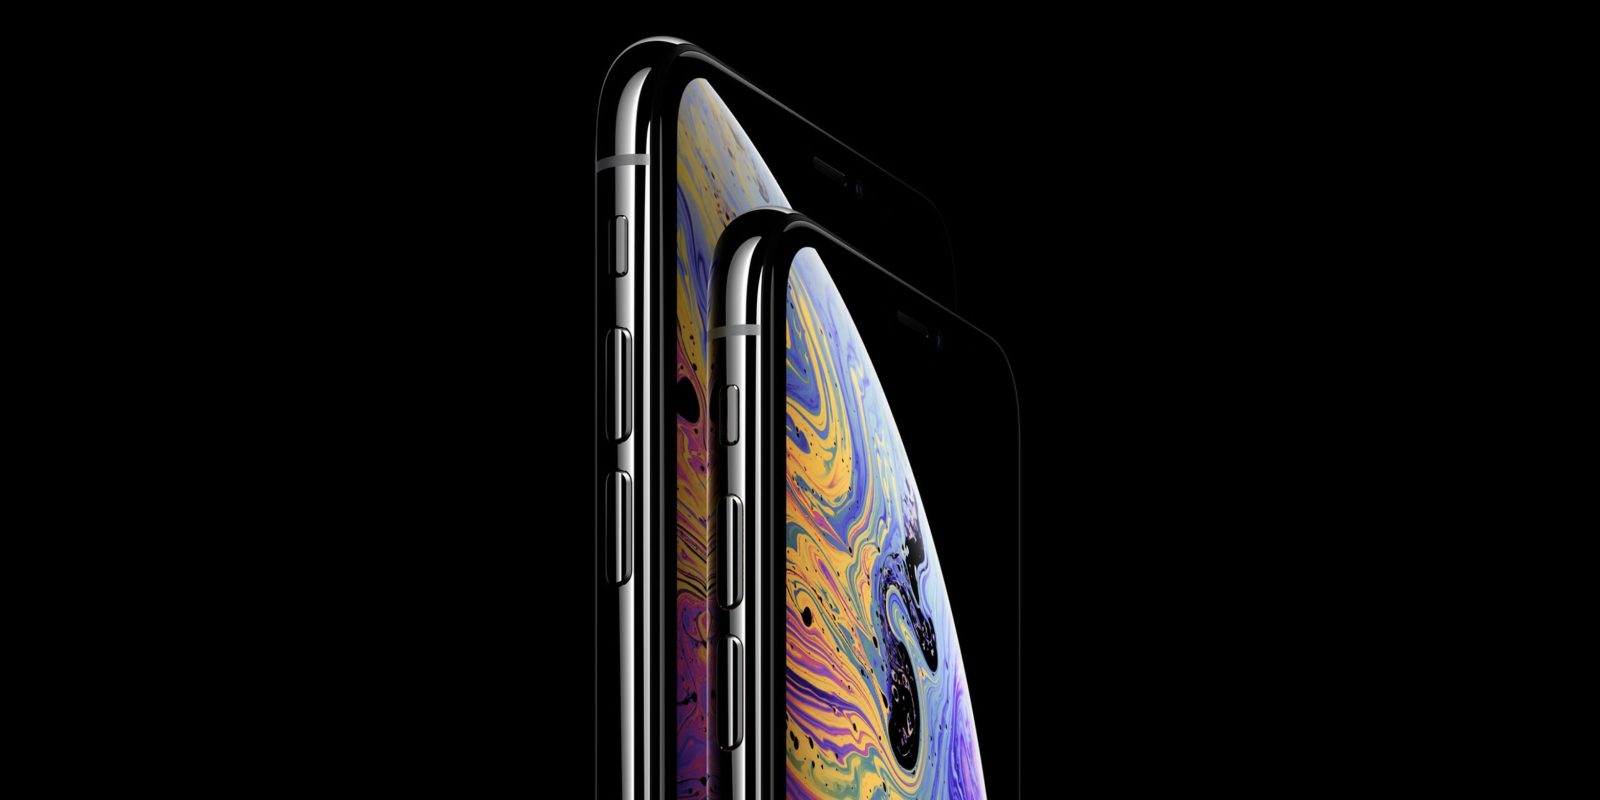 Ming-Chi Kuo reports 2020 iPhone lineup to feature new smaller and